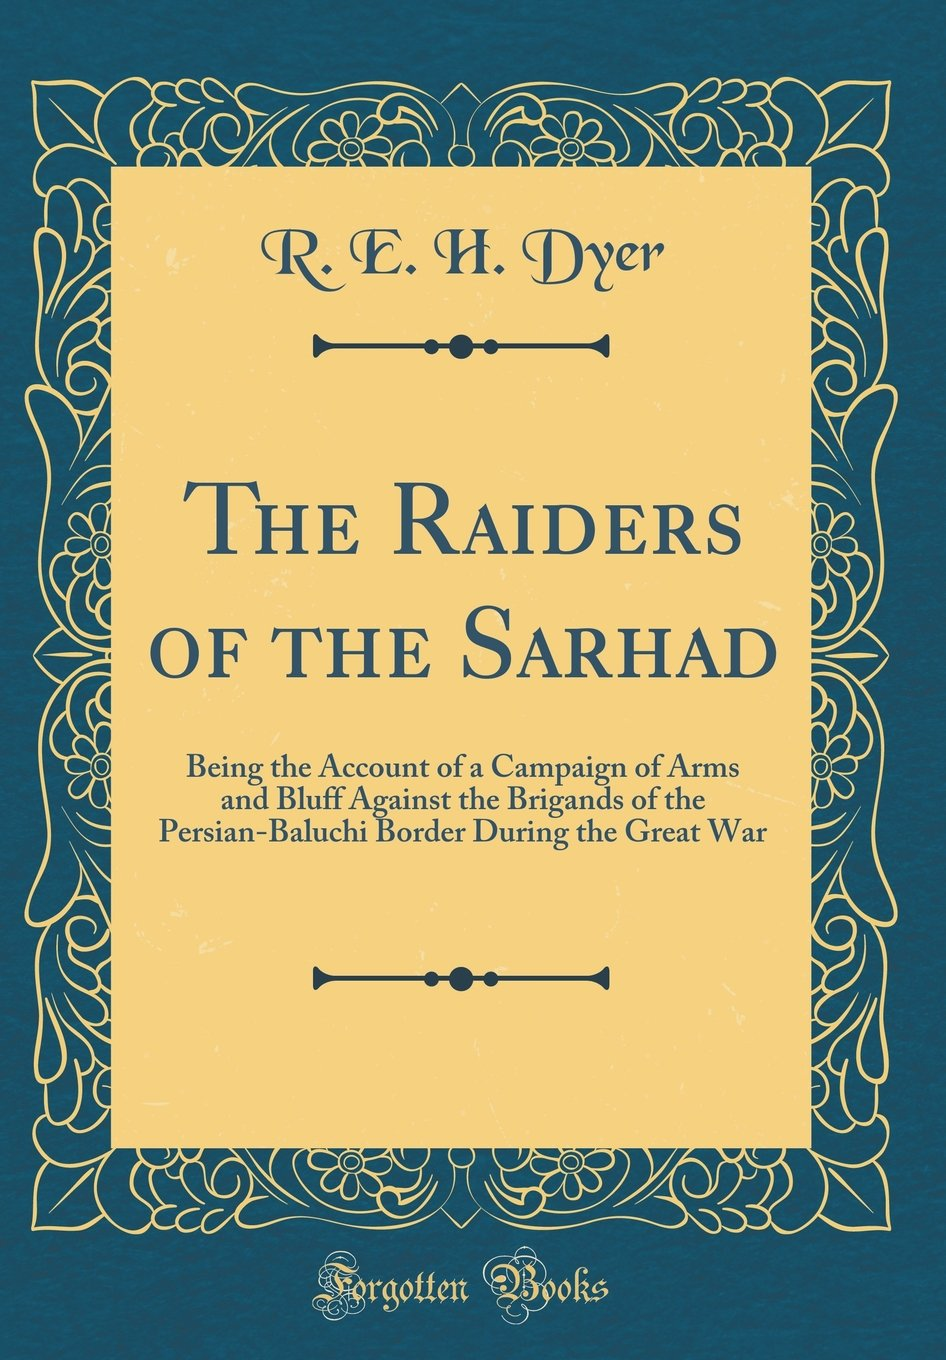 The Raiders of the Sarhad: Being the Account of a Campaign of Arms and Bluff Against the Brigands of the Persian-Baluchi Border During the Great War (Classic Reprint) ebook